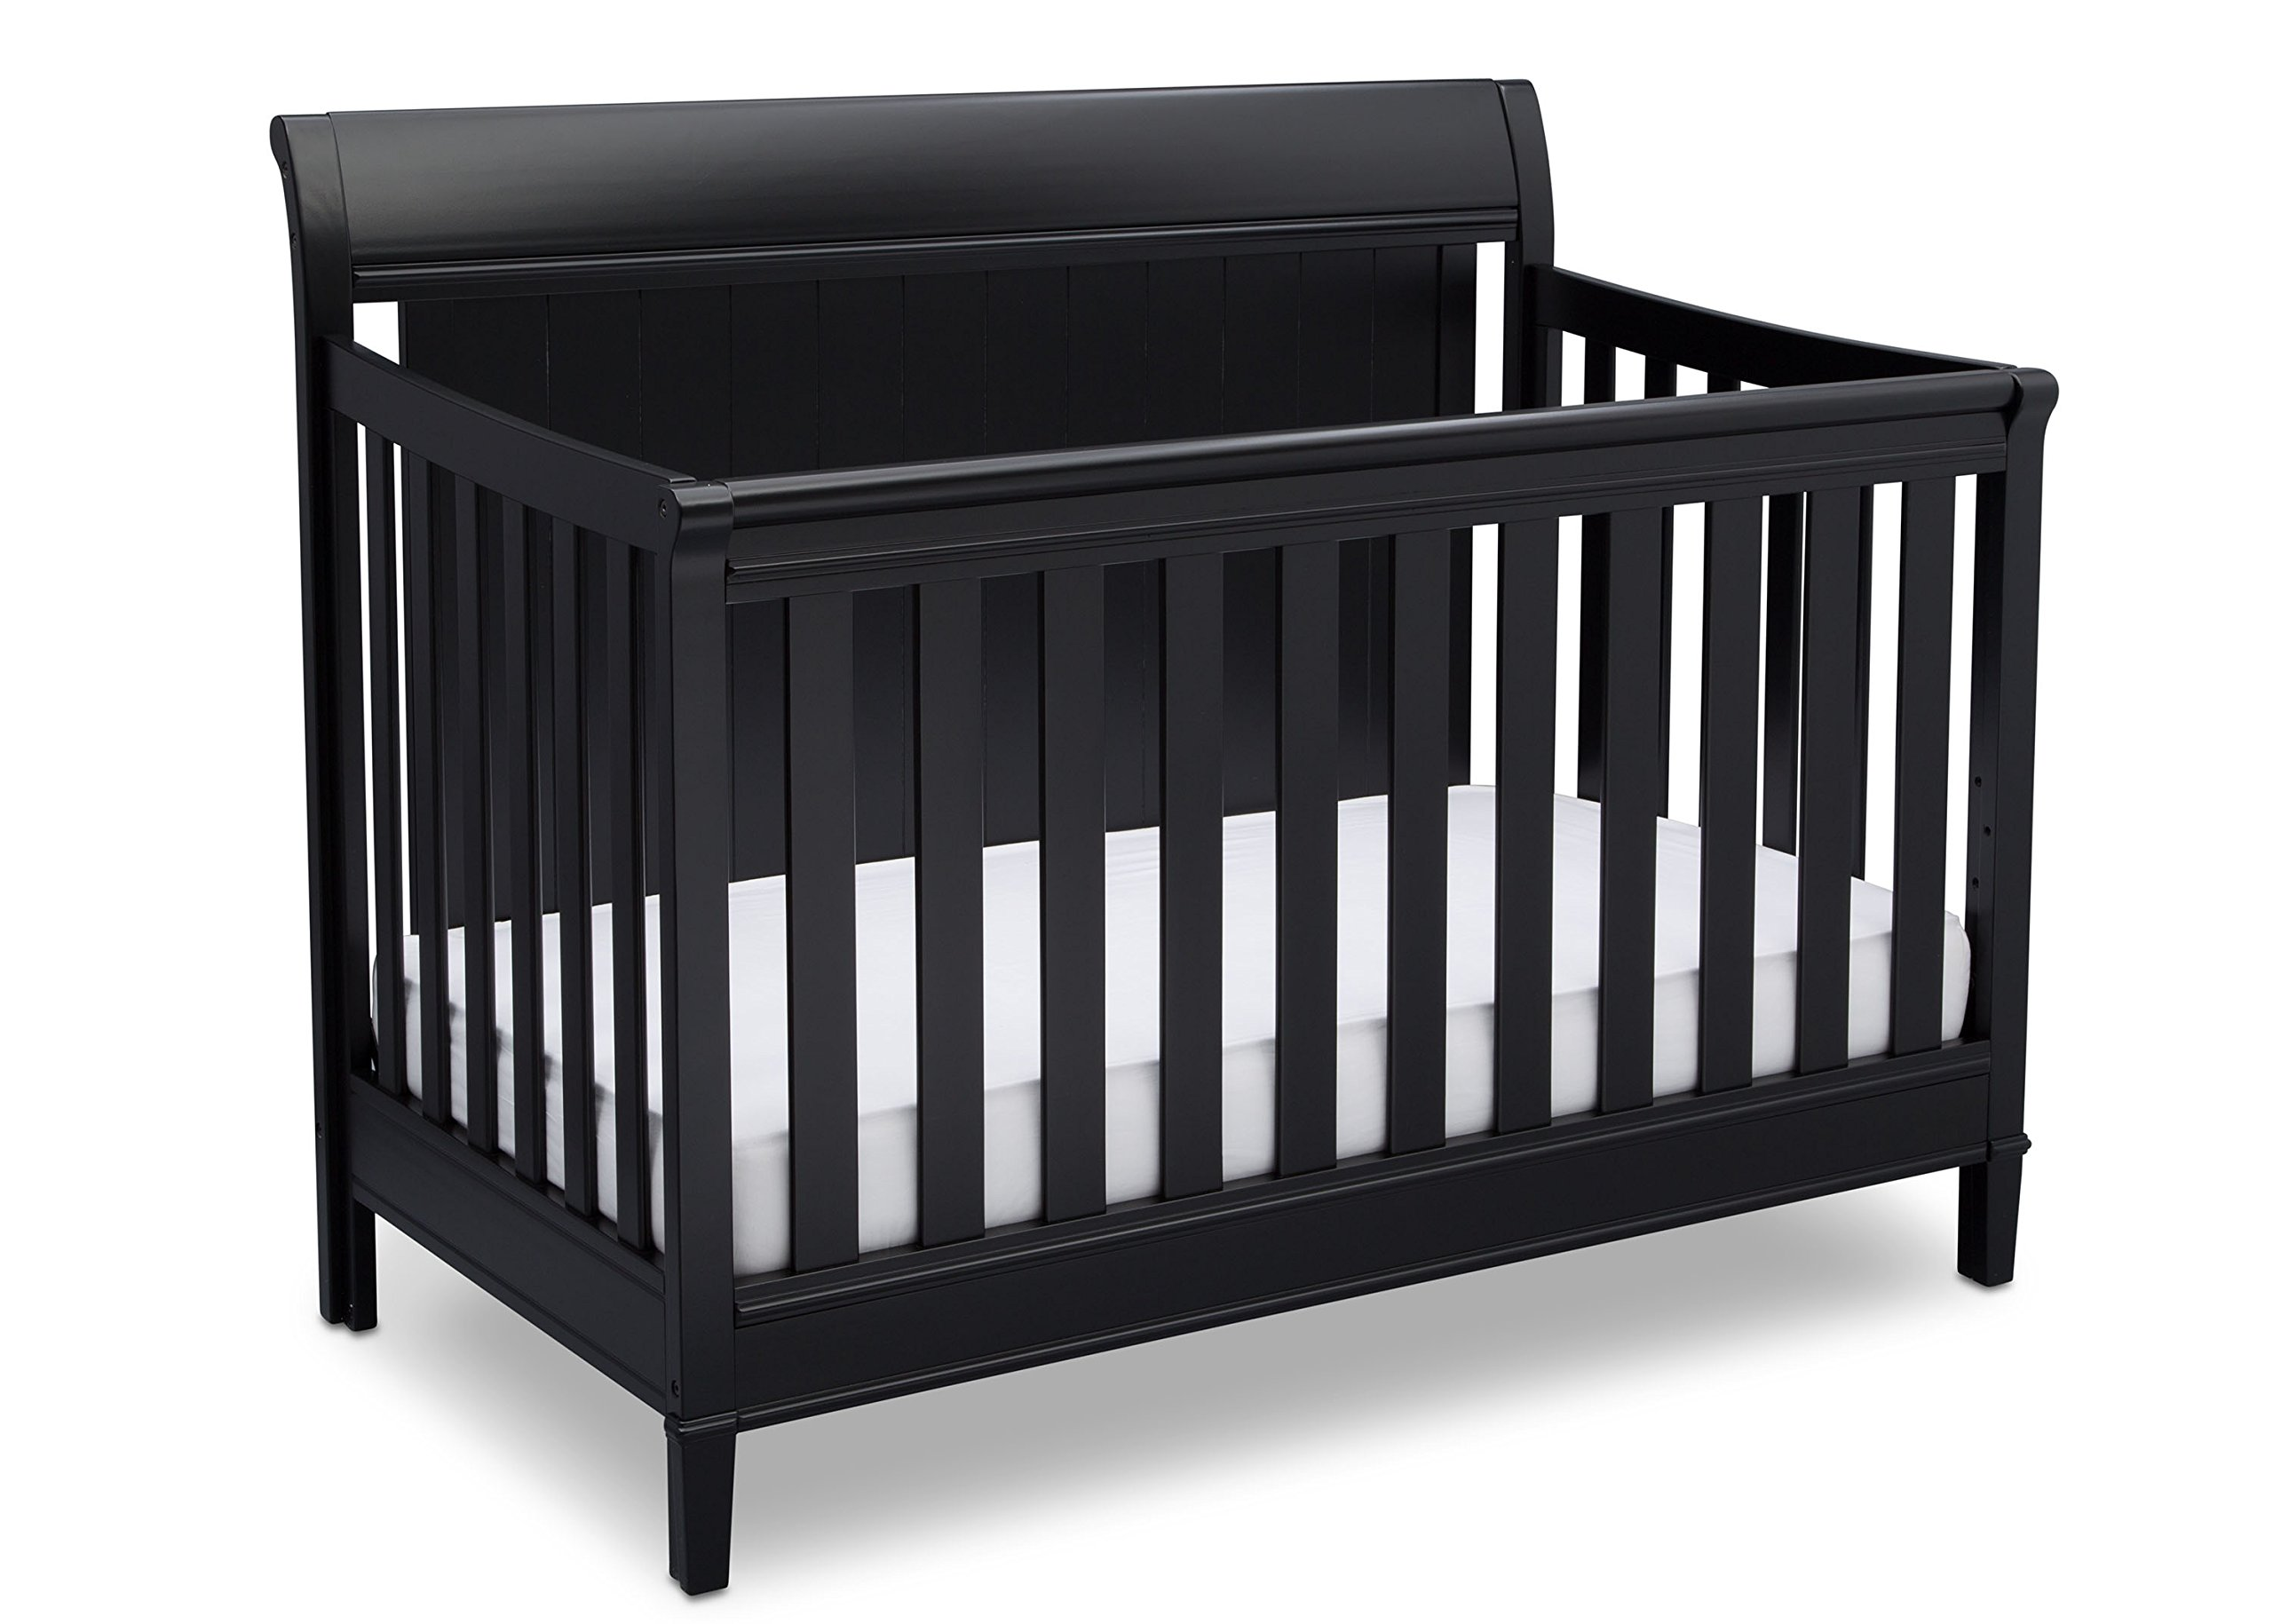 Delta Children New Haven 4-in-1 Convertible Baby Crib, Ebony by Delta Children